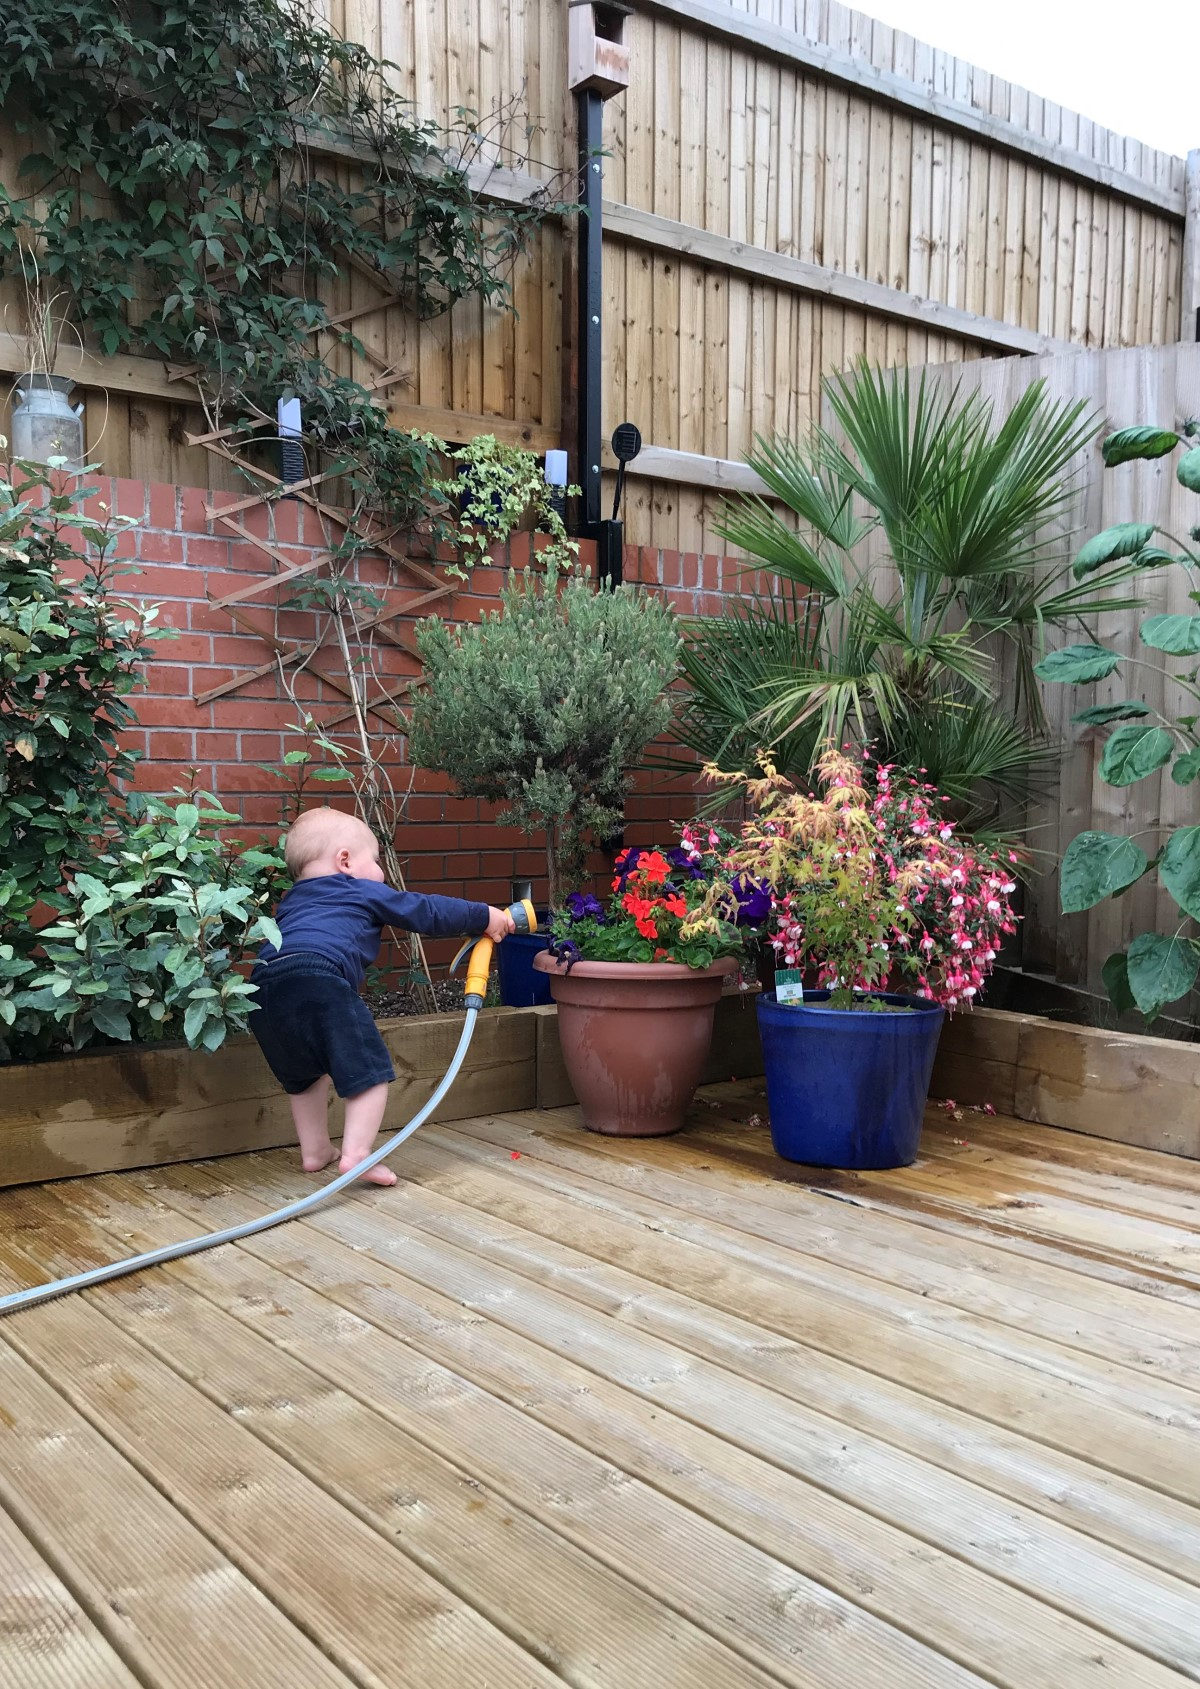 A photograph of Ruben, a baby boy, standing on wooden decking and aiming a hosepipe over some potted plants.